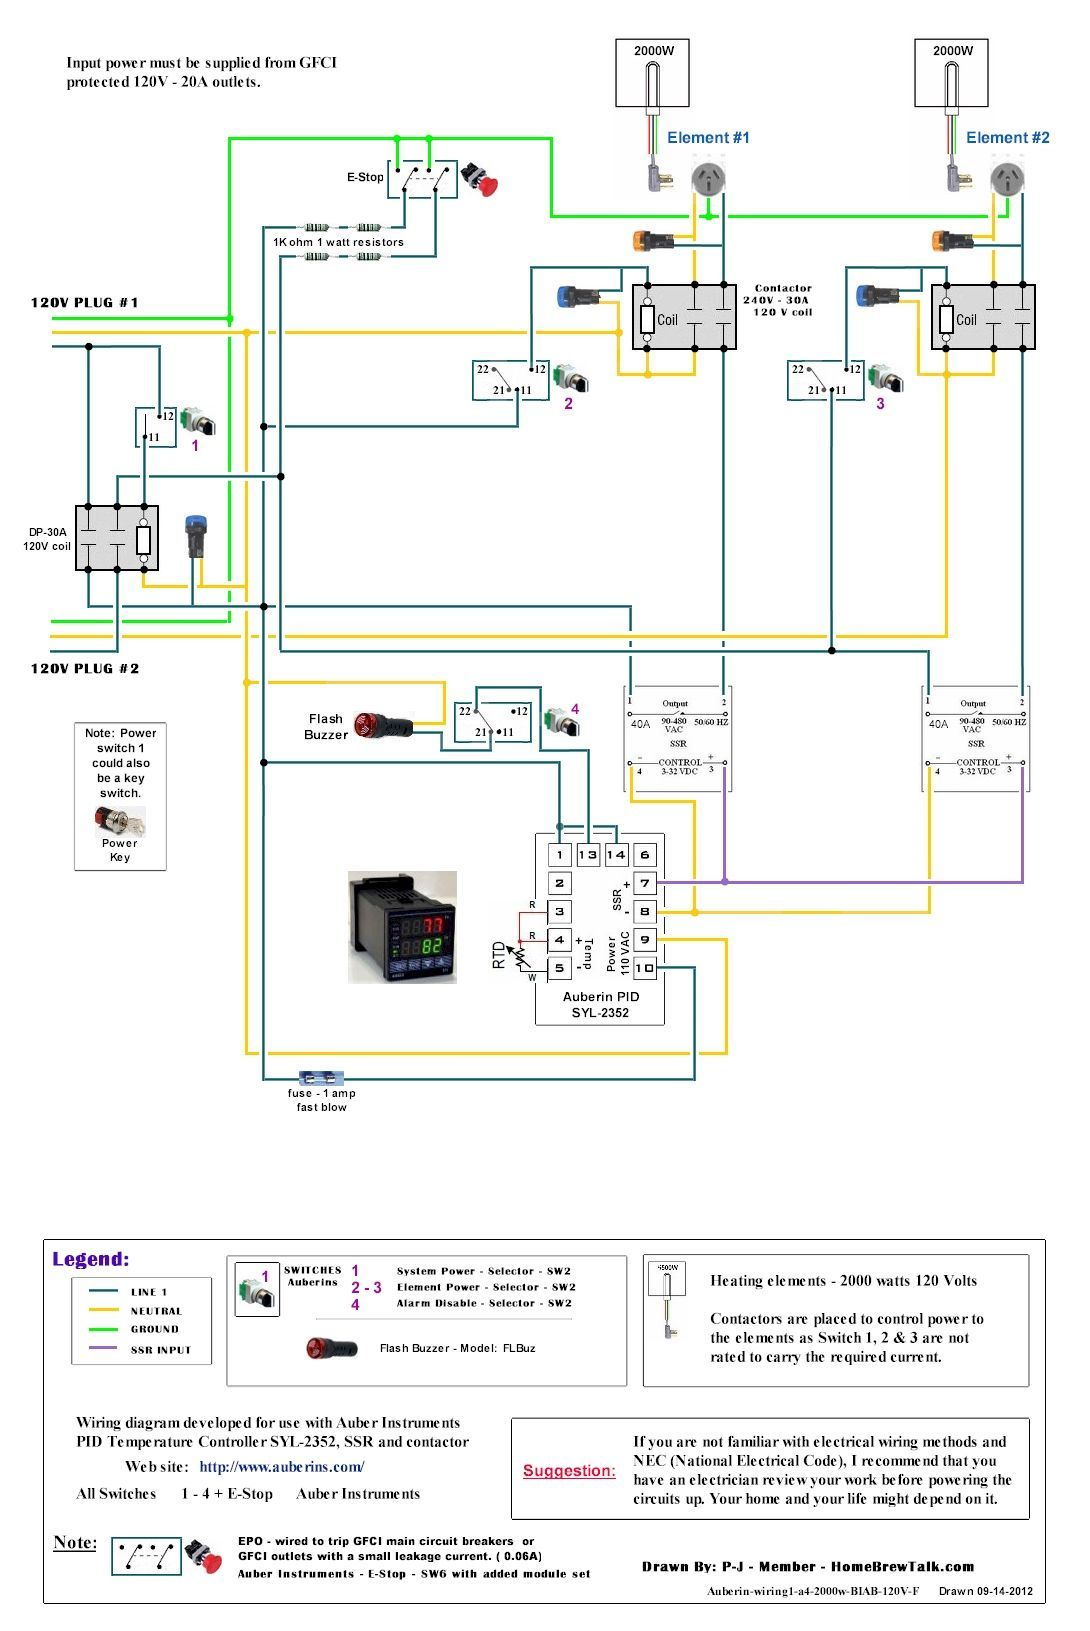 30 Fresh 120v Relay Wiring Diagram In 2020 Home Brewing Home Brewing Equipment Brewing